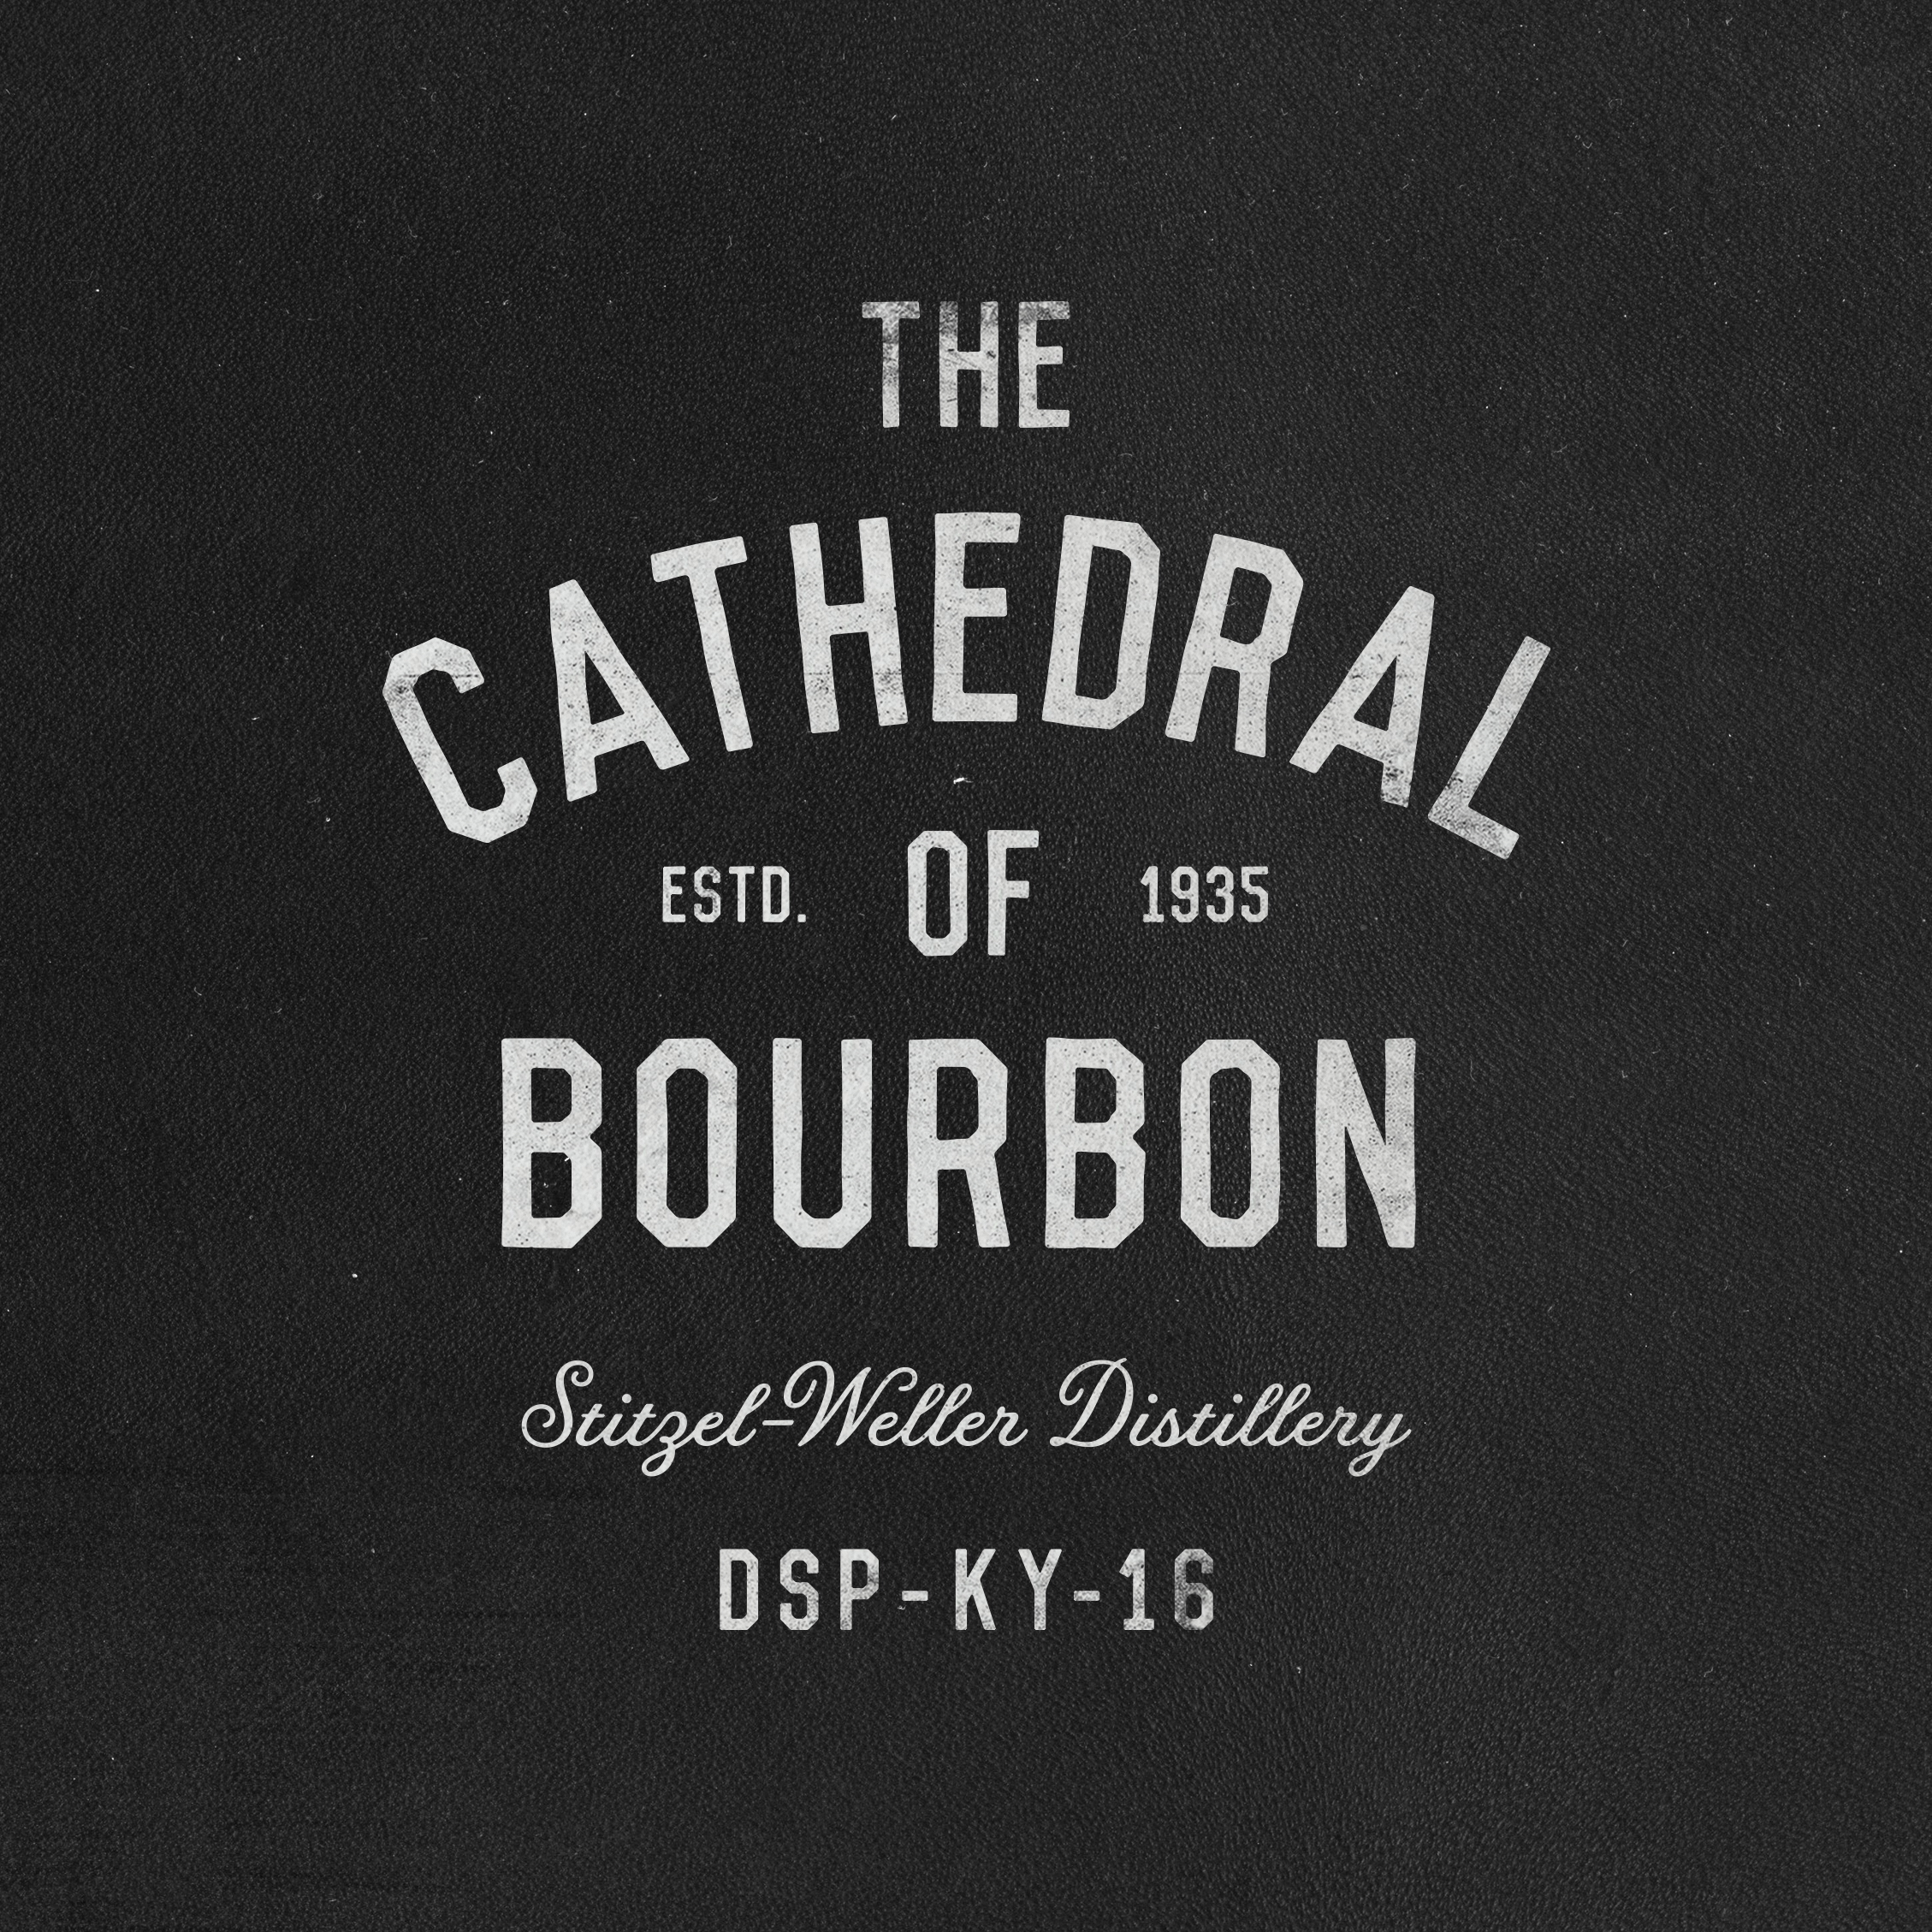 The Cathedral of Bourbon shirt pappy kentucky bourbon texture typography